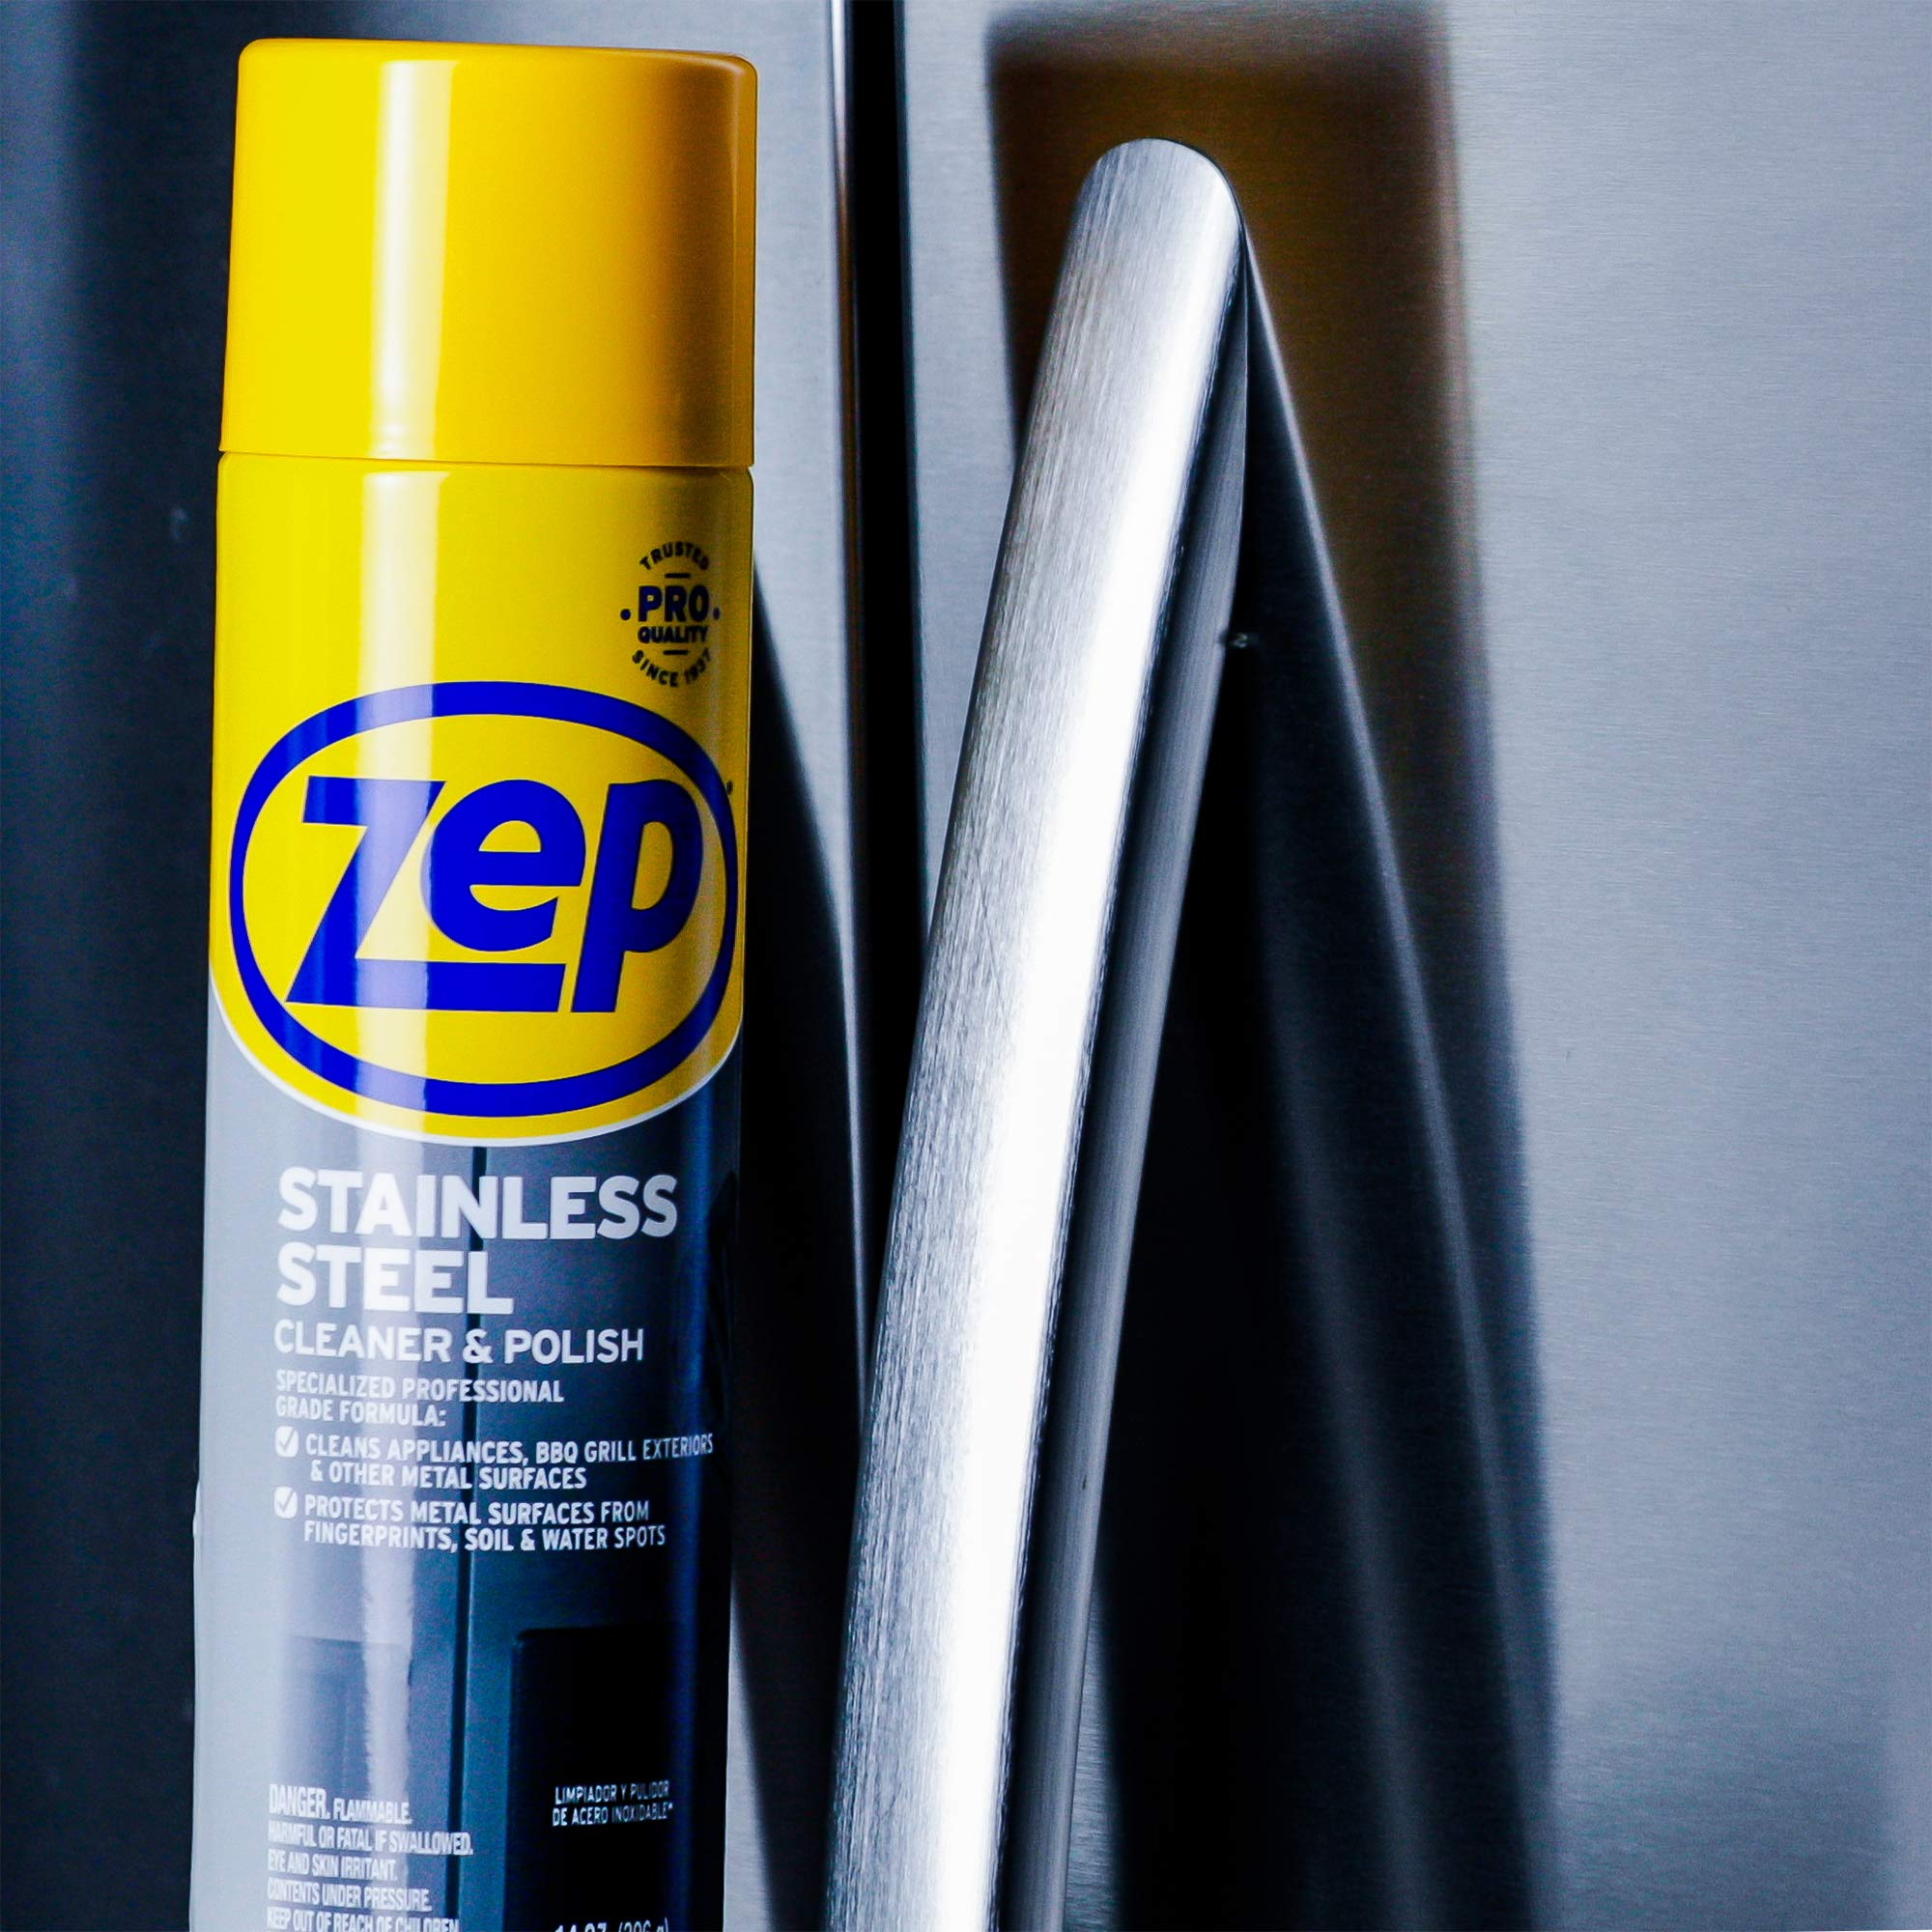 Zep Stainless Steel Cleaner 14 Ounce ZUSSTL14 (case of 4) by Zep (Image #4)